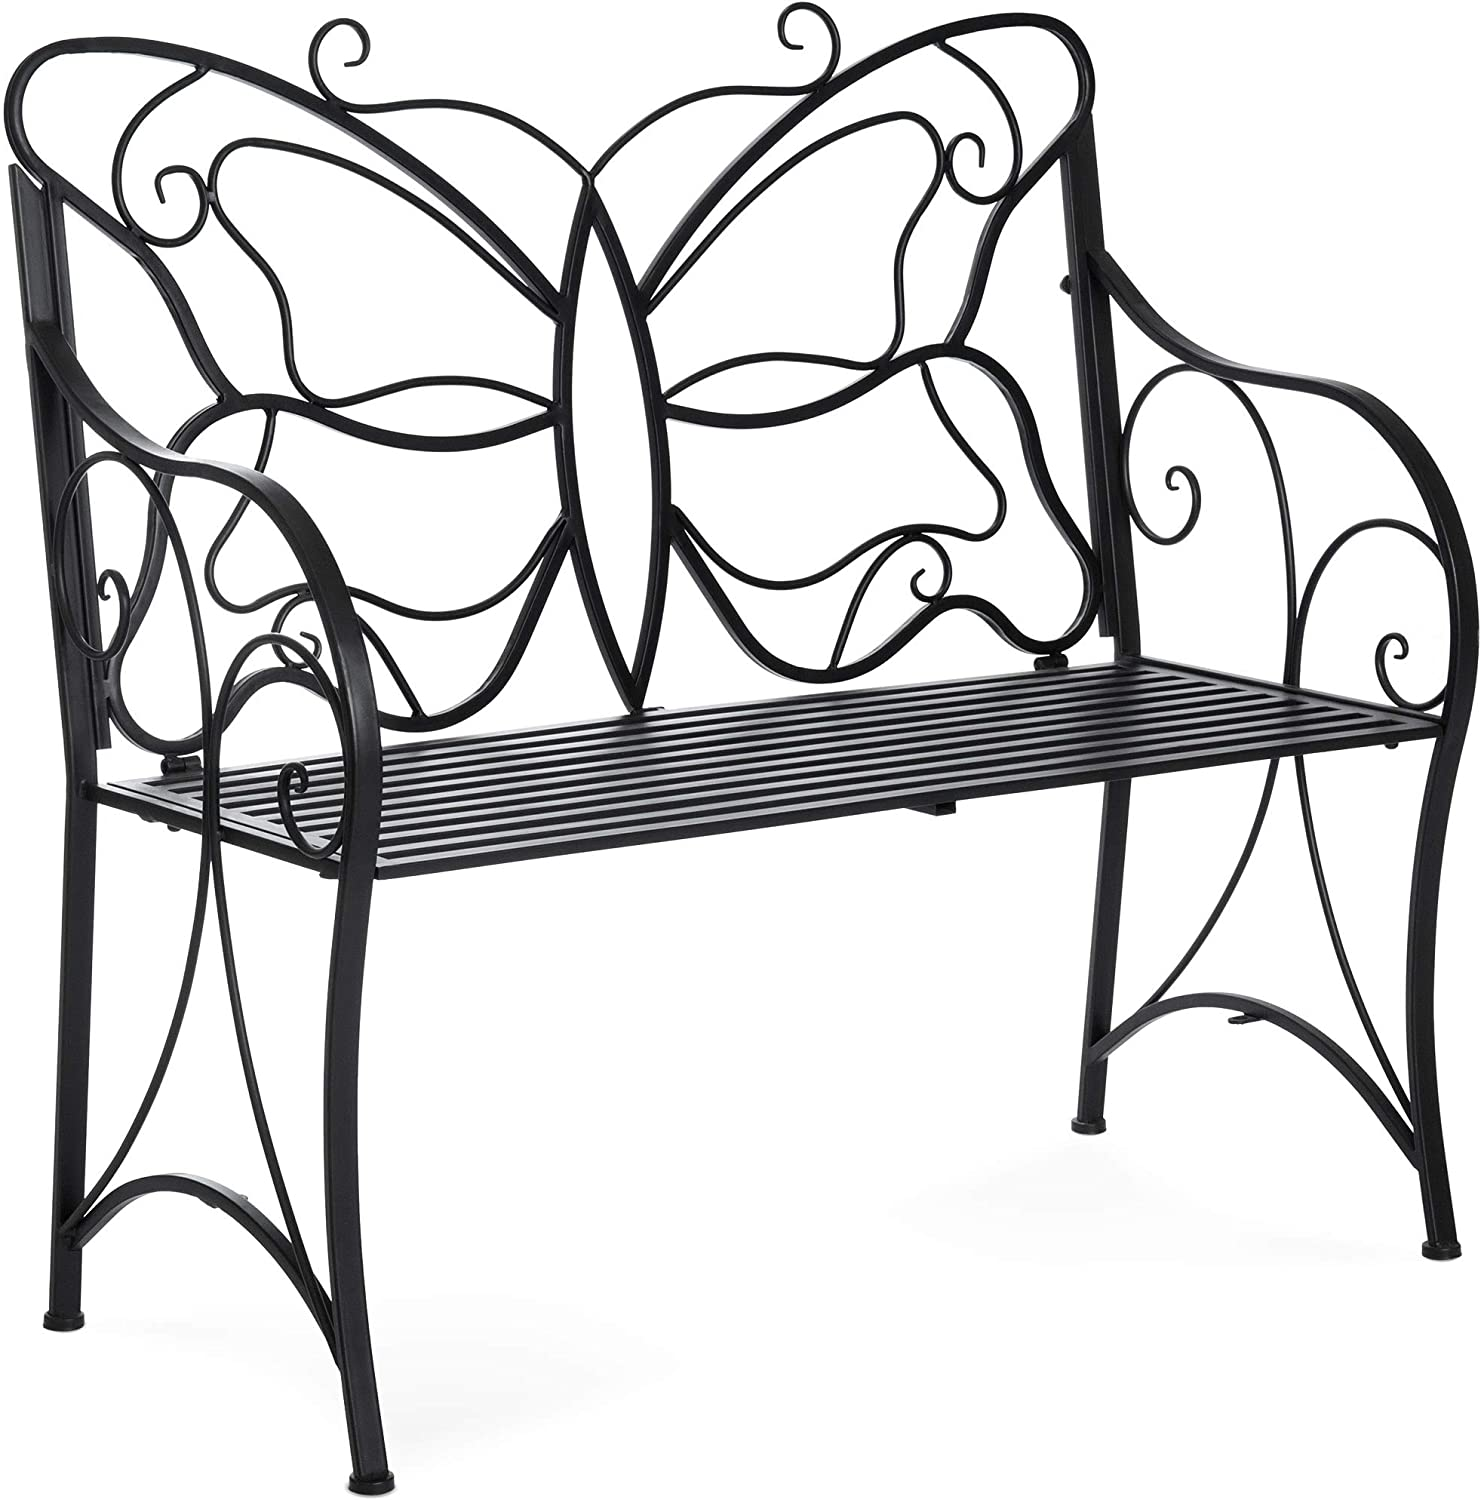 Best Choice Products 40in 2-Person Metal Butterfly Design Patio Garden Bench Furniture w Armrests – Black